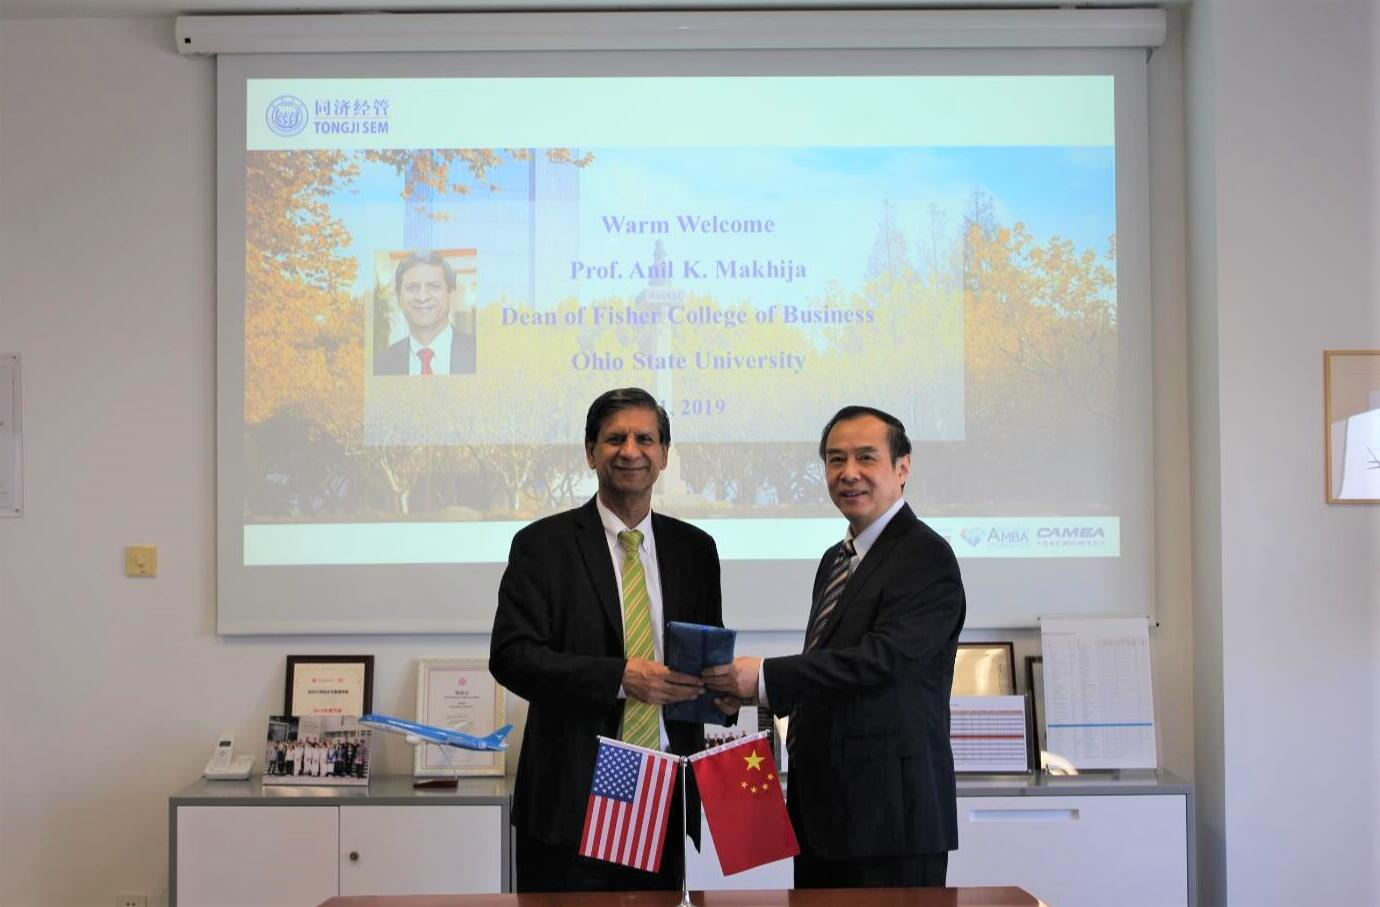 Dean of Fisher College of Business, Ohio State University, US, Visits Tongji SEM